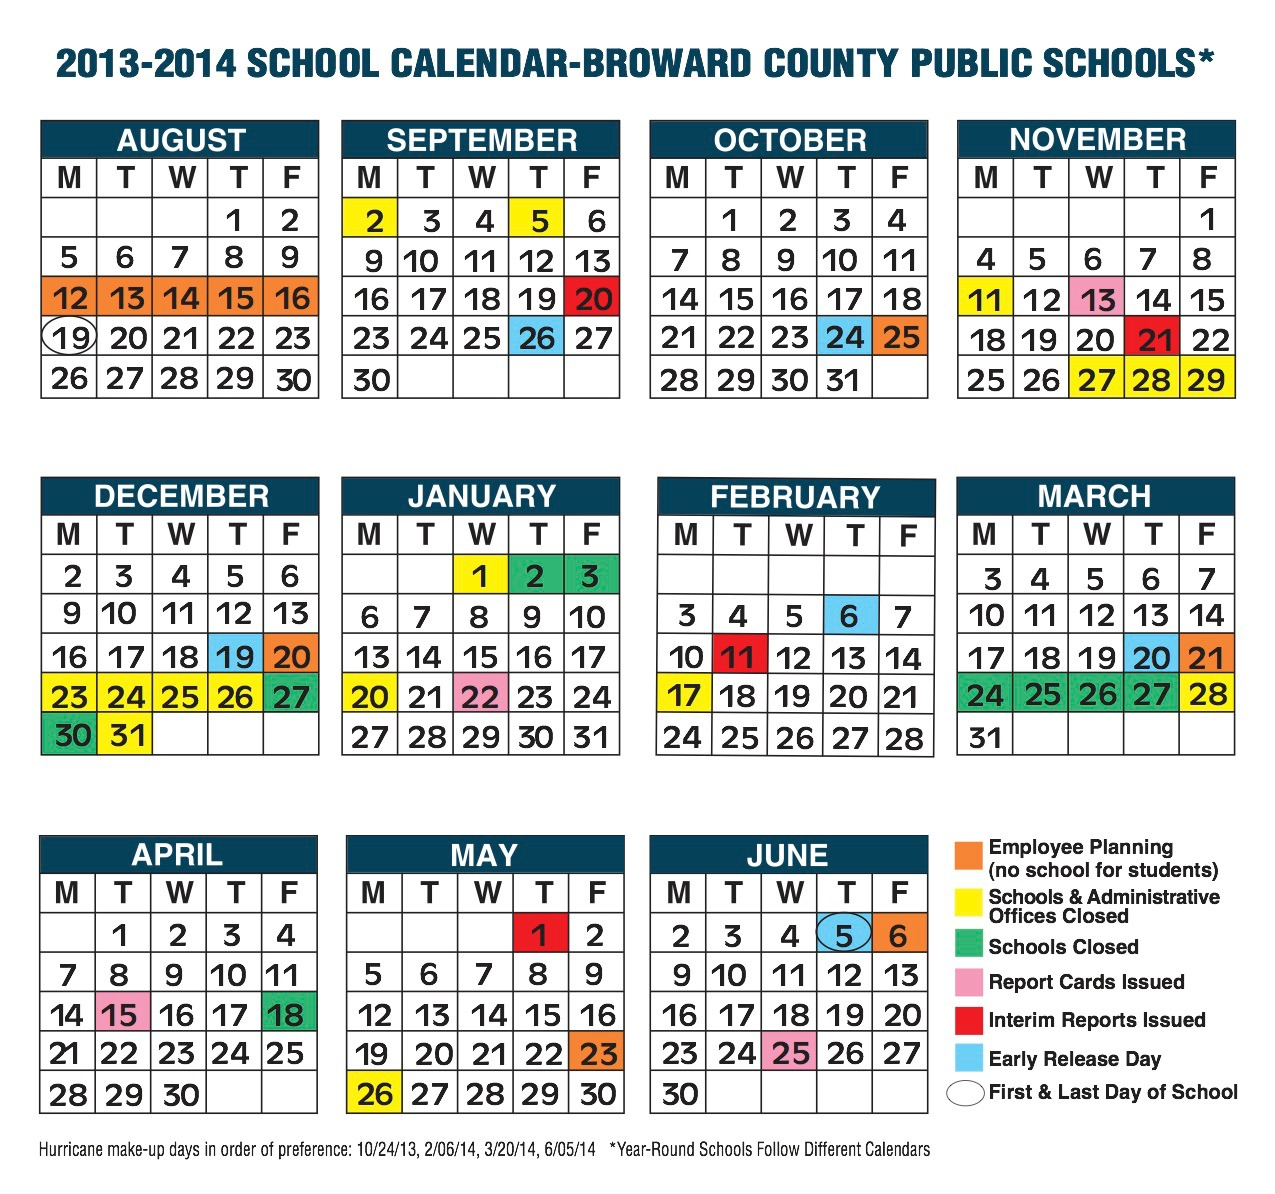 File Name : 2013-2014-SCHOOL-CALENDAR-BROWARD-COUNTY-PUBLIC-SCHOOLS ...